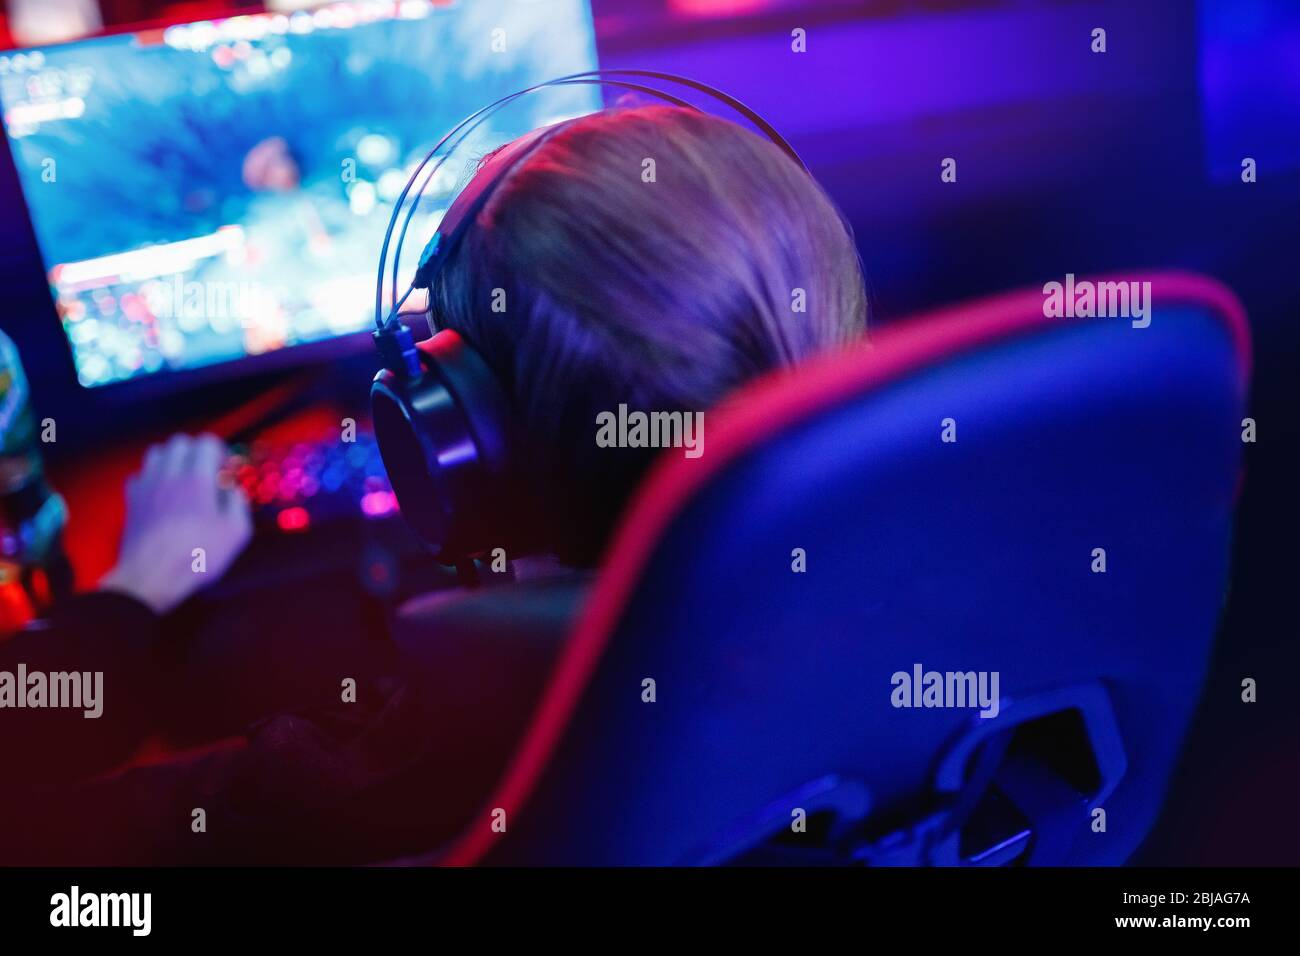 Professional Cyber Video Gamer Studio Room With Computer For Stream In Neon Blue Red Color Blur Background Soft Focus Stock Photo Alamy